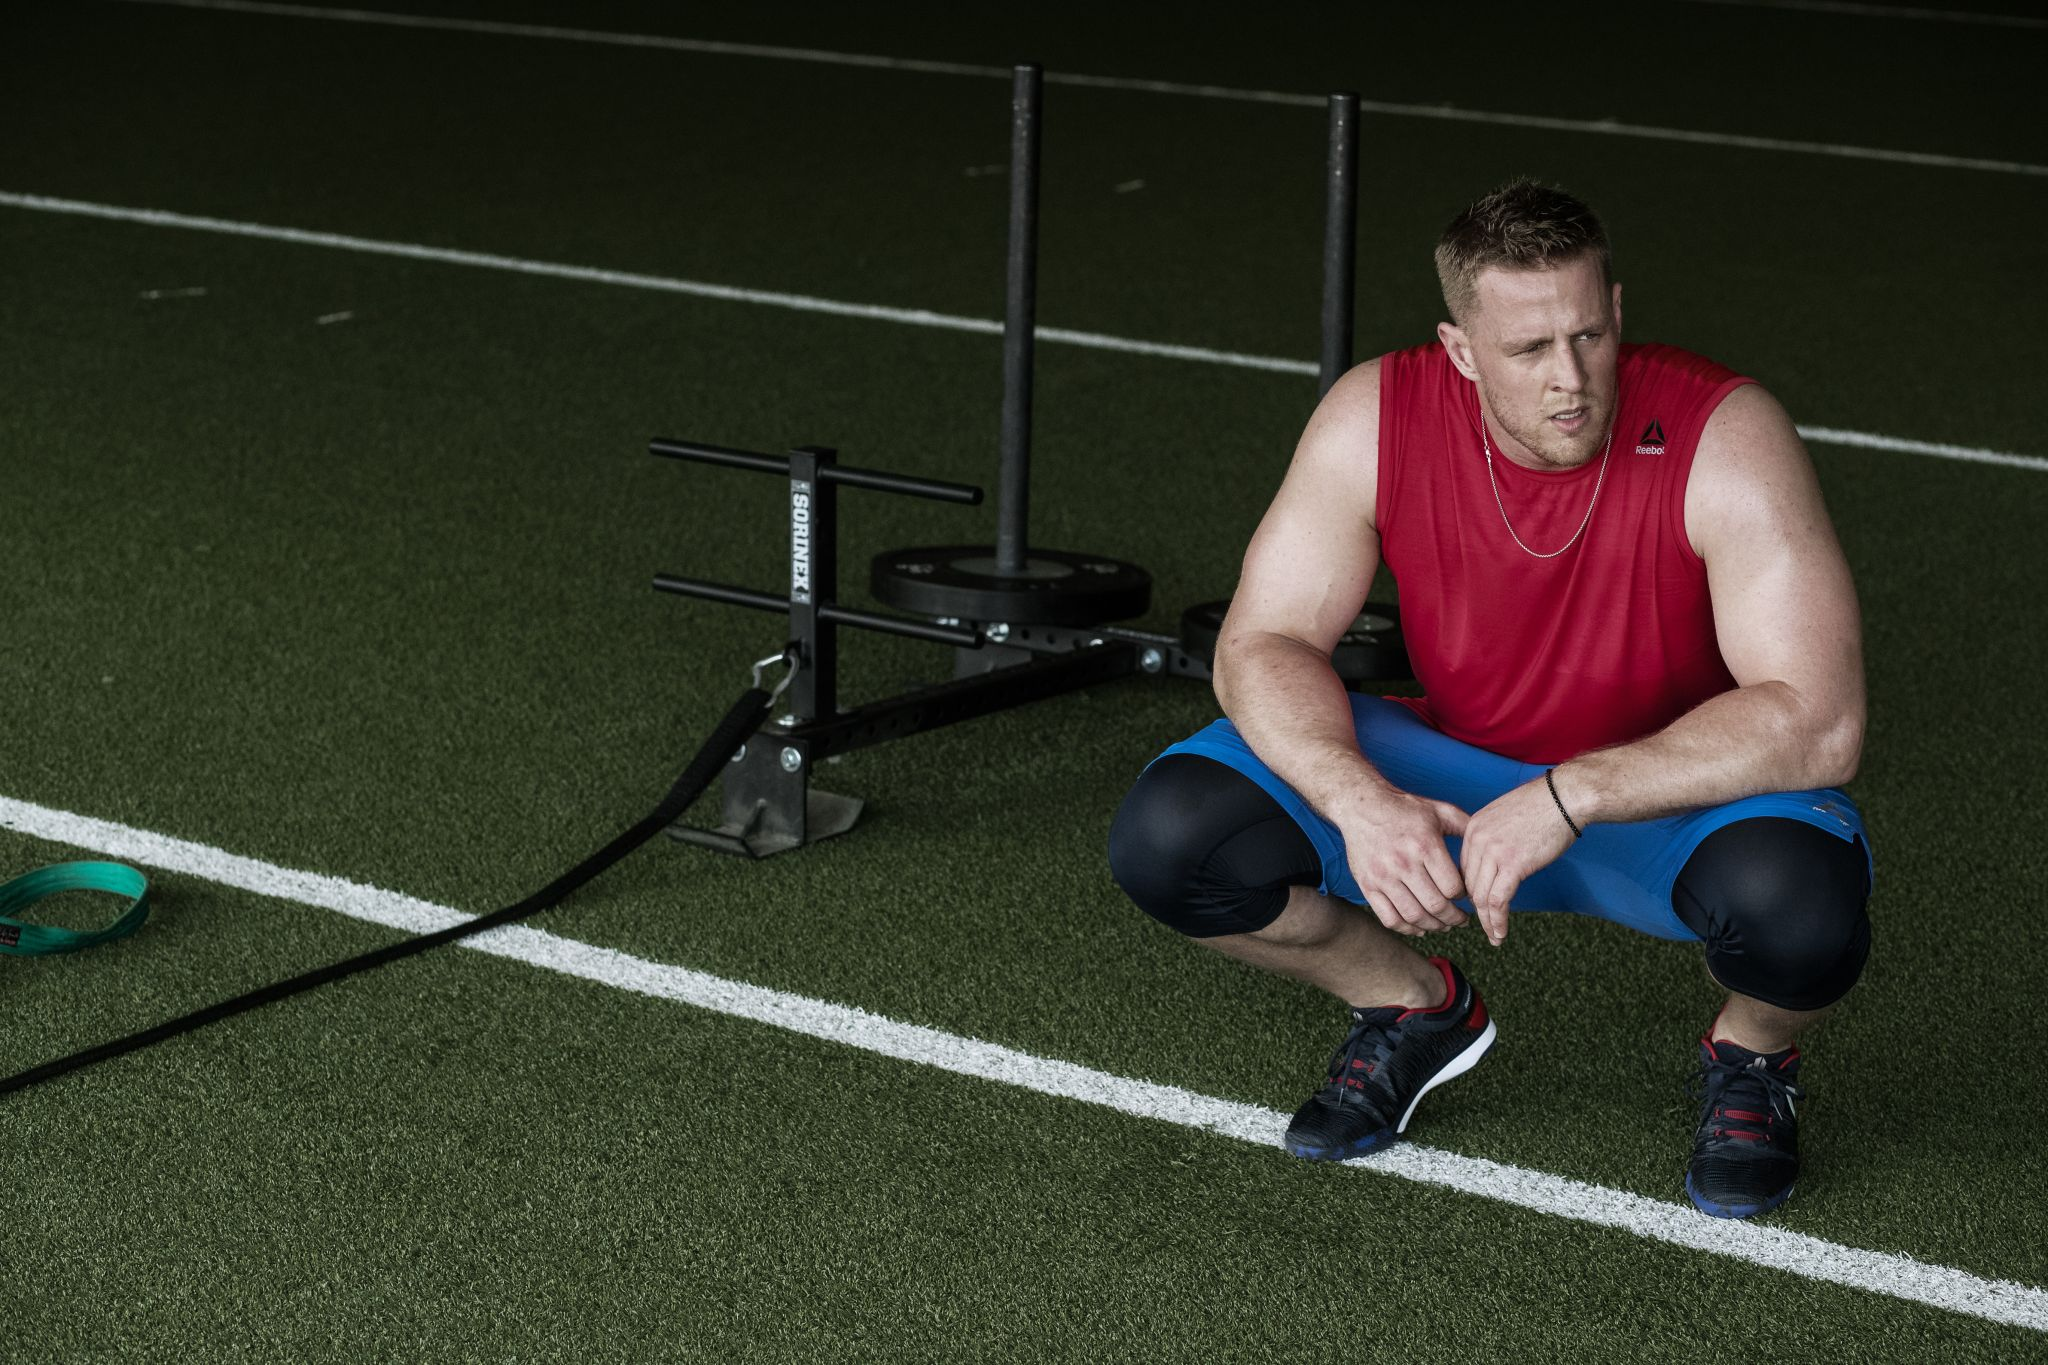 Reebok releases new colorway of J.J. Watt s shoes - Houston Chronicle 390d66a50